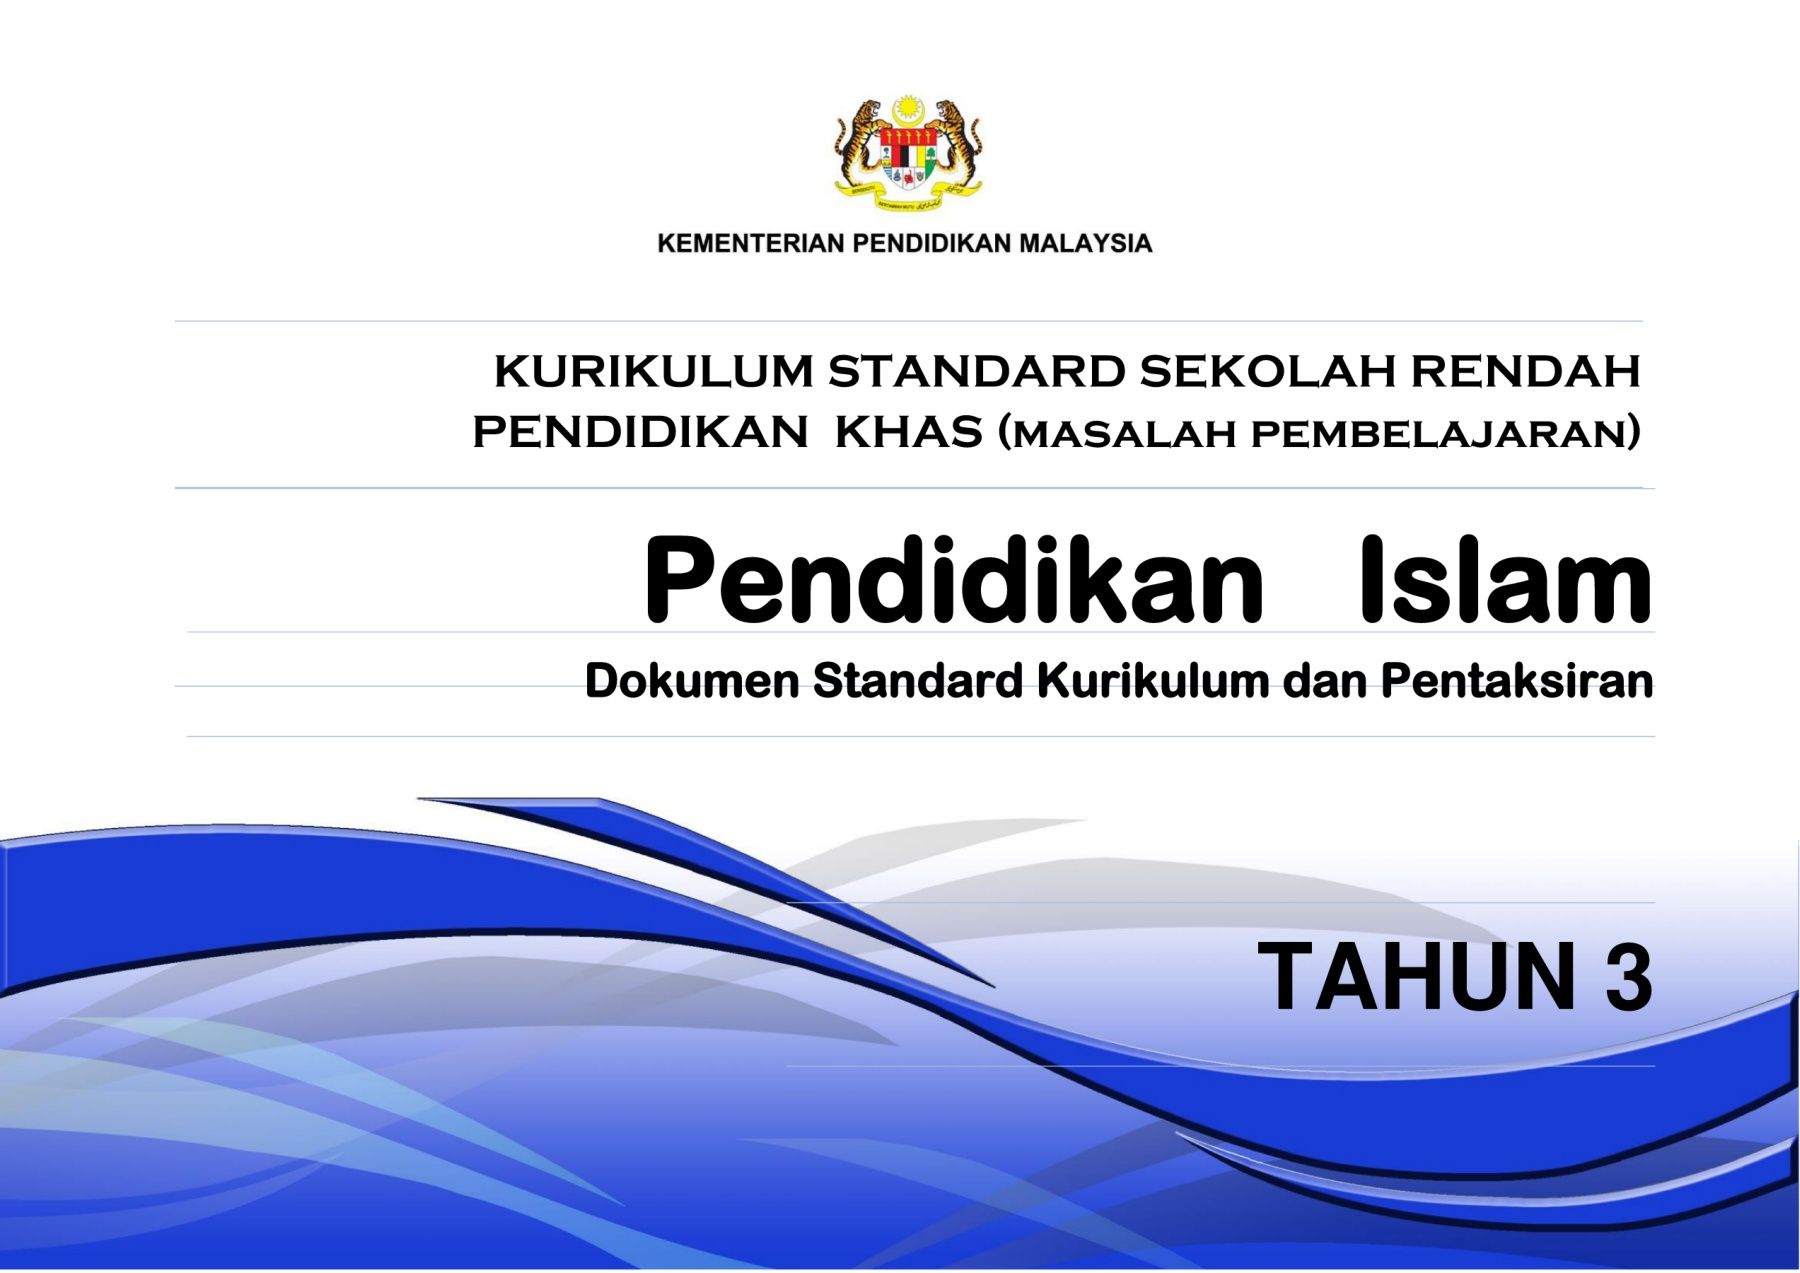 Dskp Pend Islam Tahun 3 Pages 1 44 Text Version Anyflip